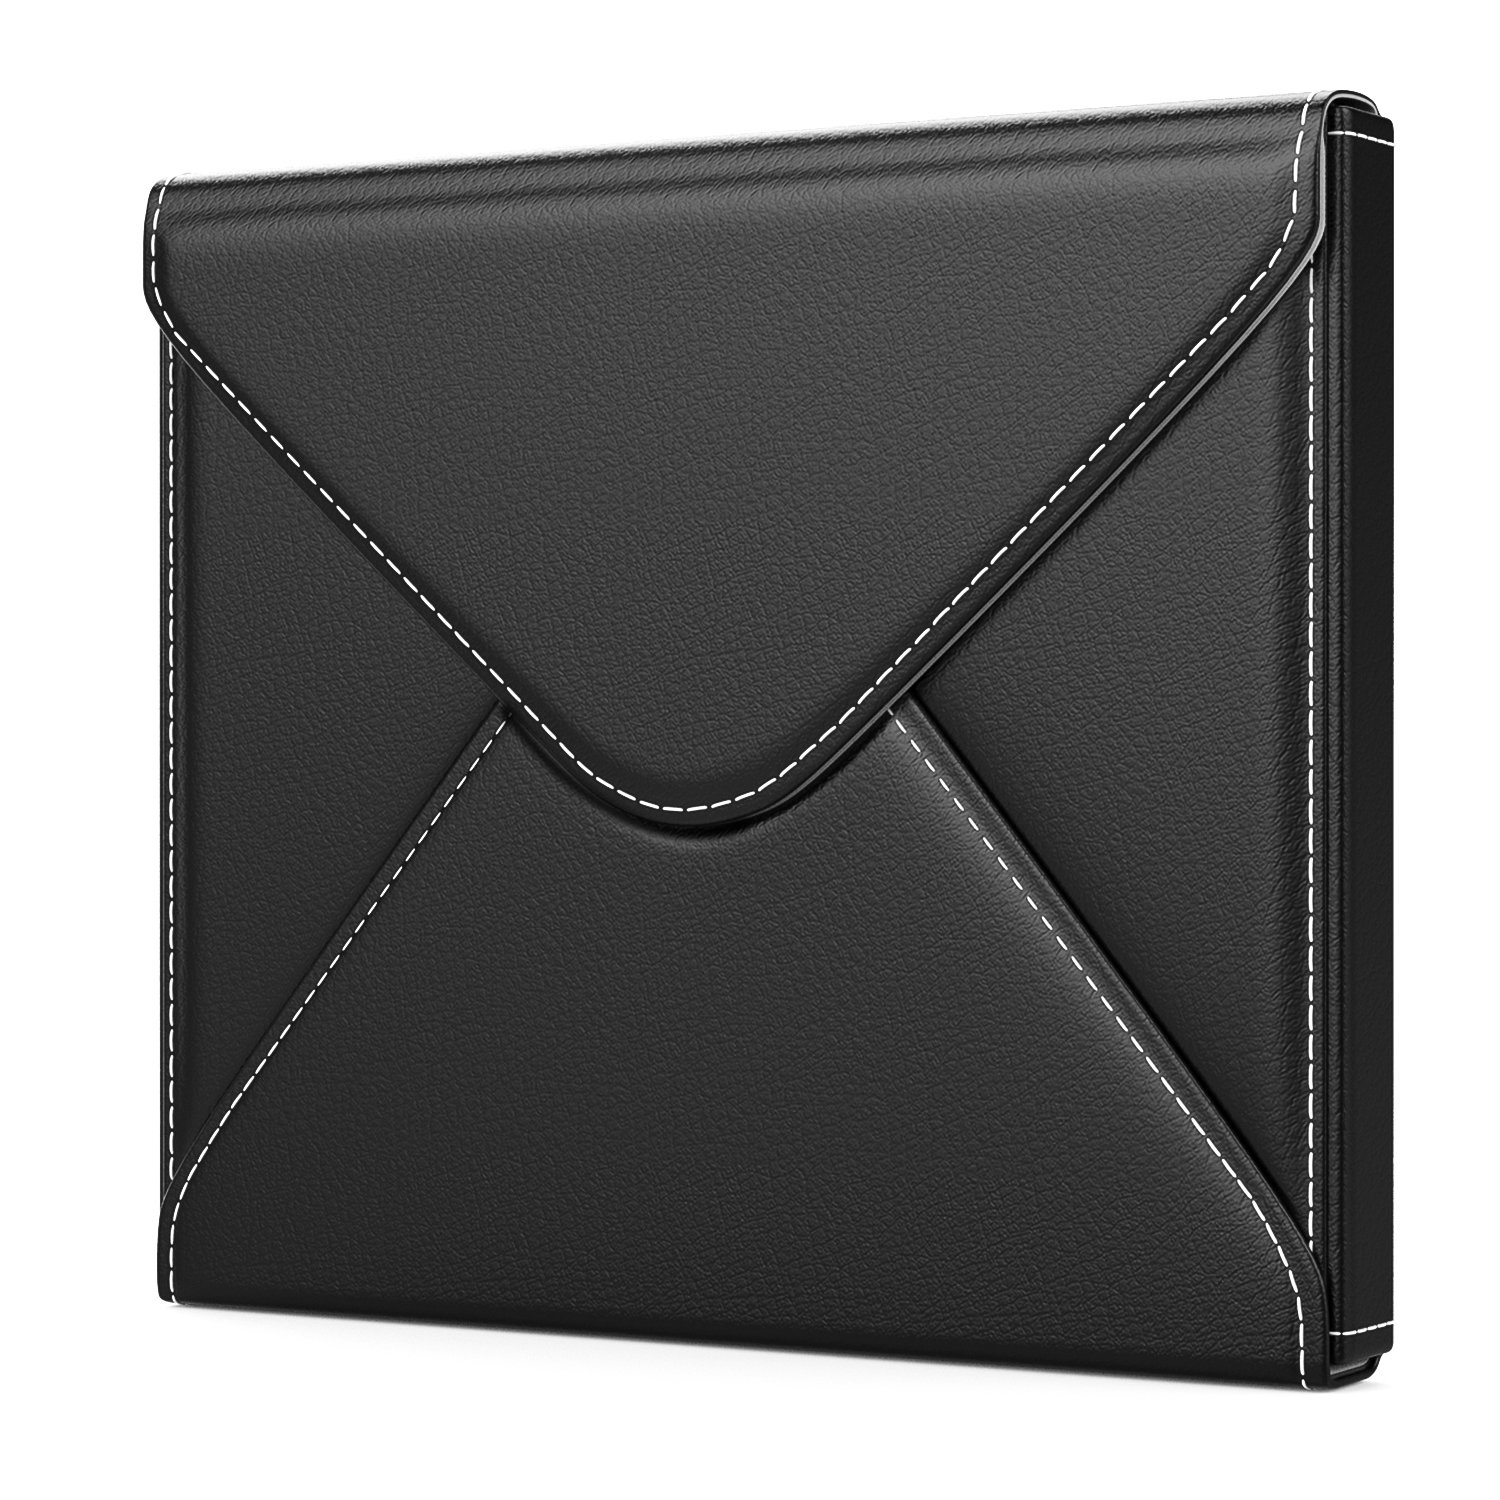 MoKo Kindle Oasis 7 inch Sleeve Case, Premium PU Leather Protective Envelope Cover Bag Pouch for Amazon 7'' Kindle Oasis E-Reader (9th Generation, 2017 Release) - Black